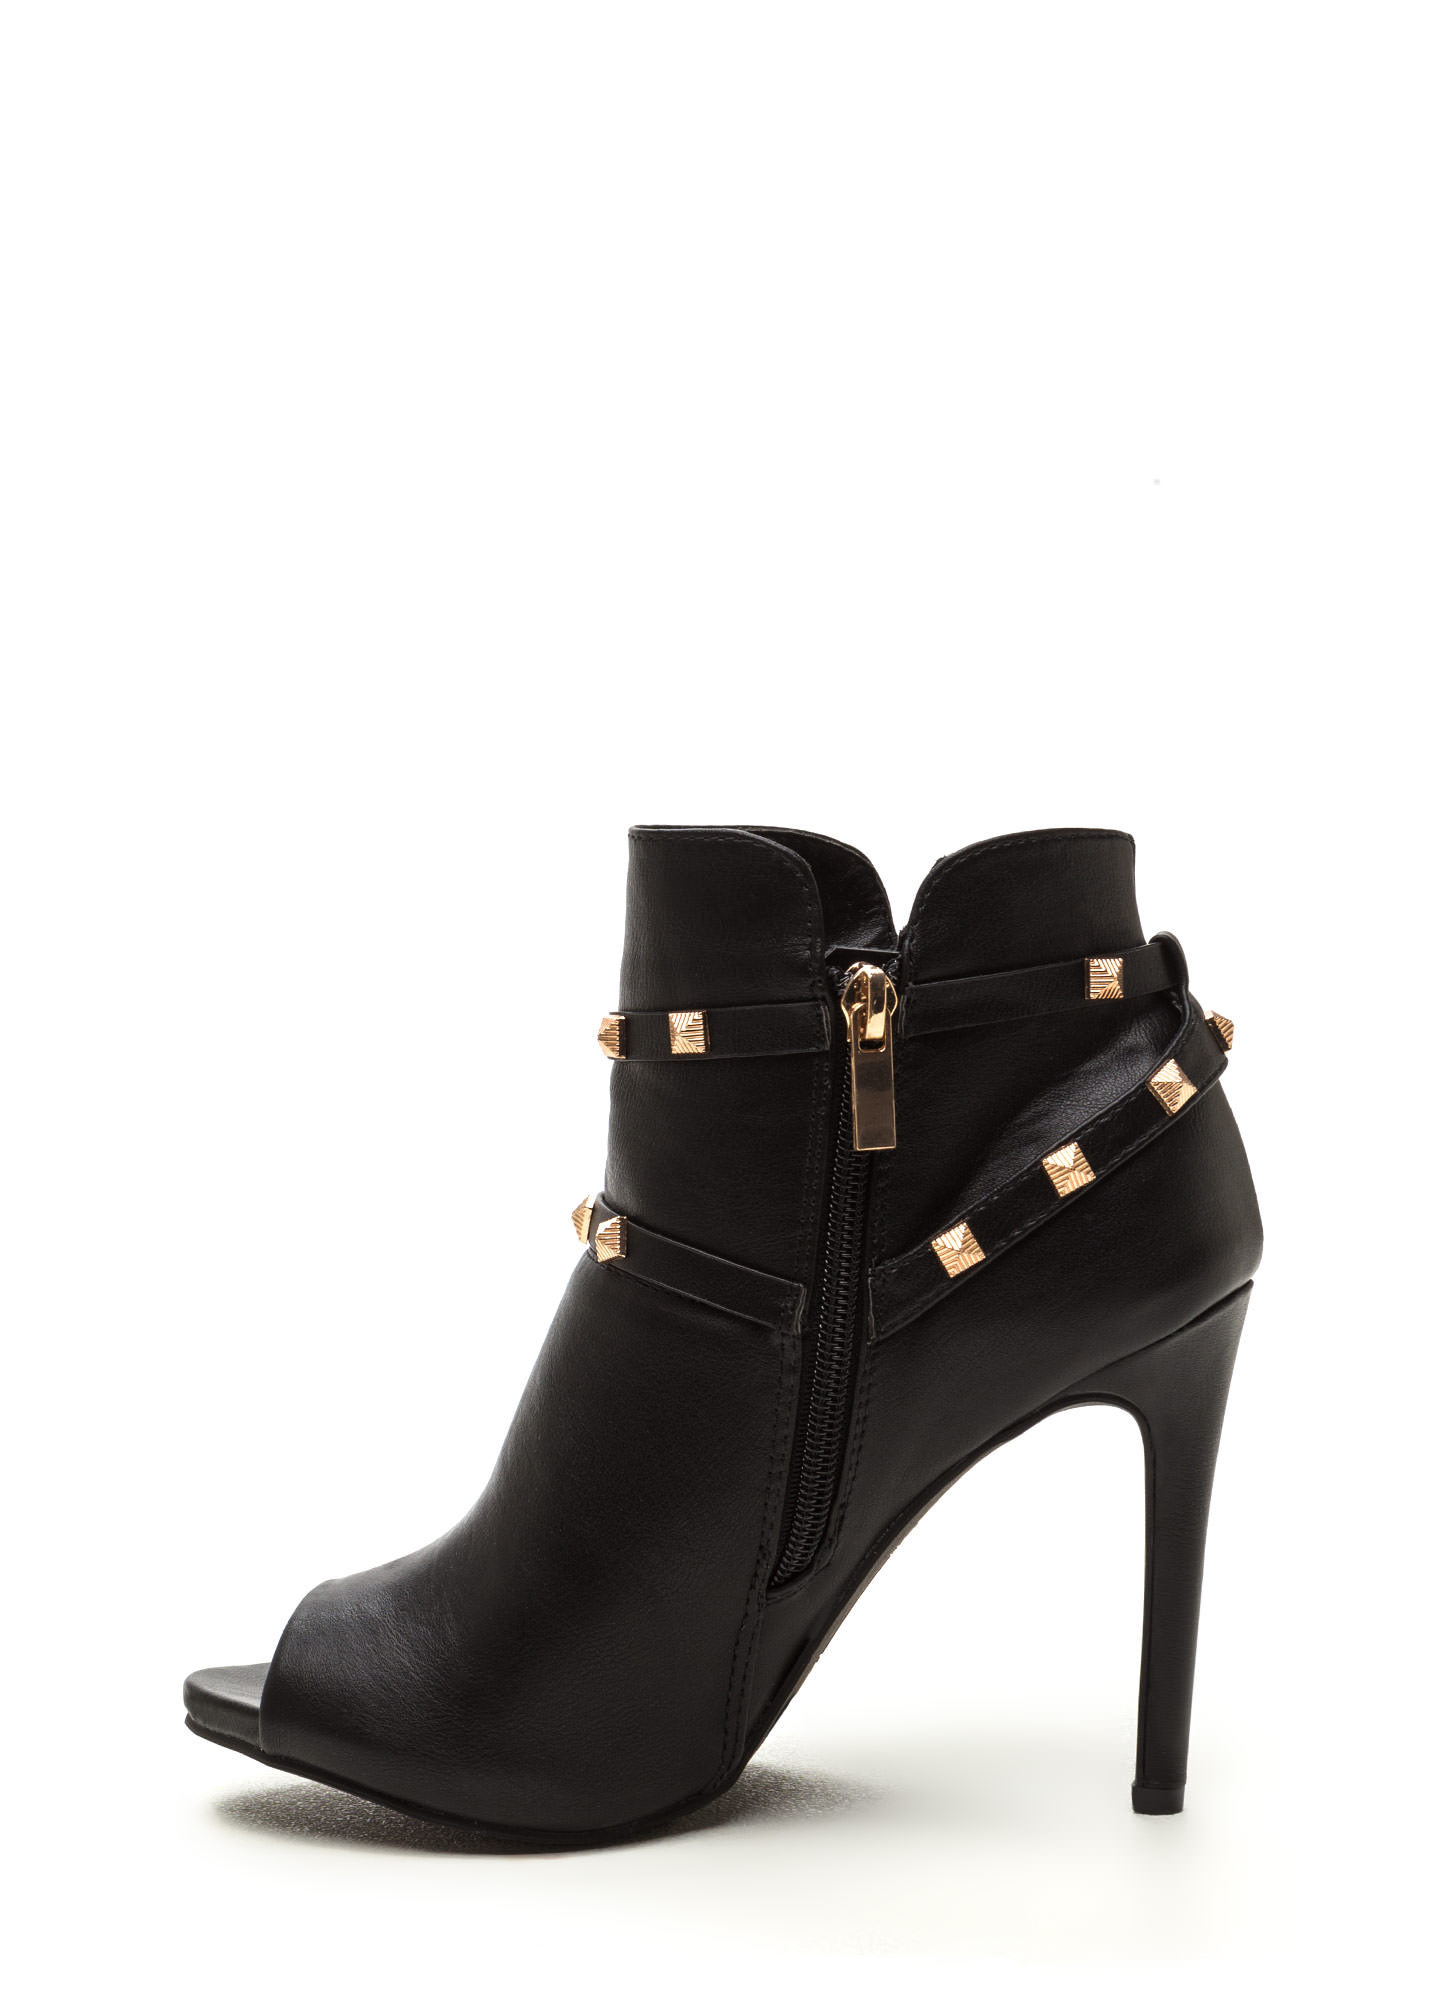 Edgy 'N Chic Strappy Studded Booties BLACK (Final Sale)